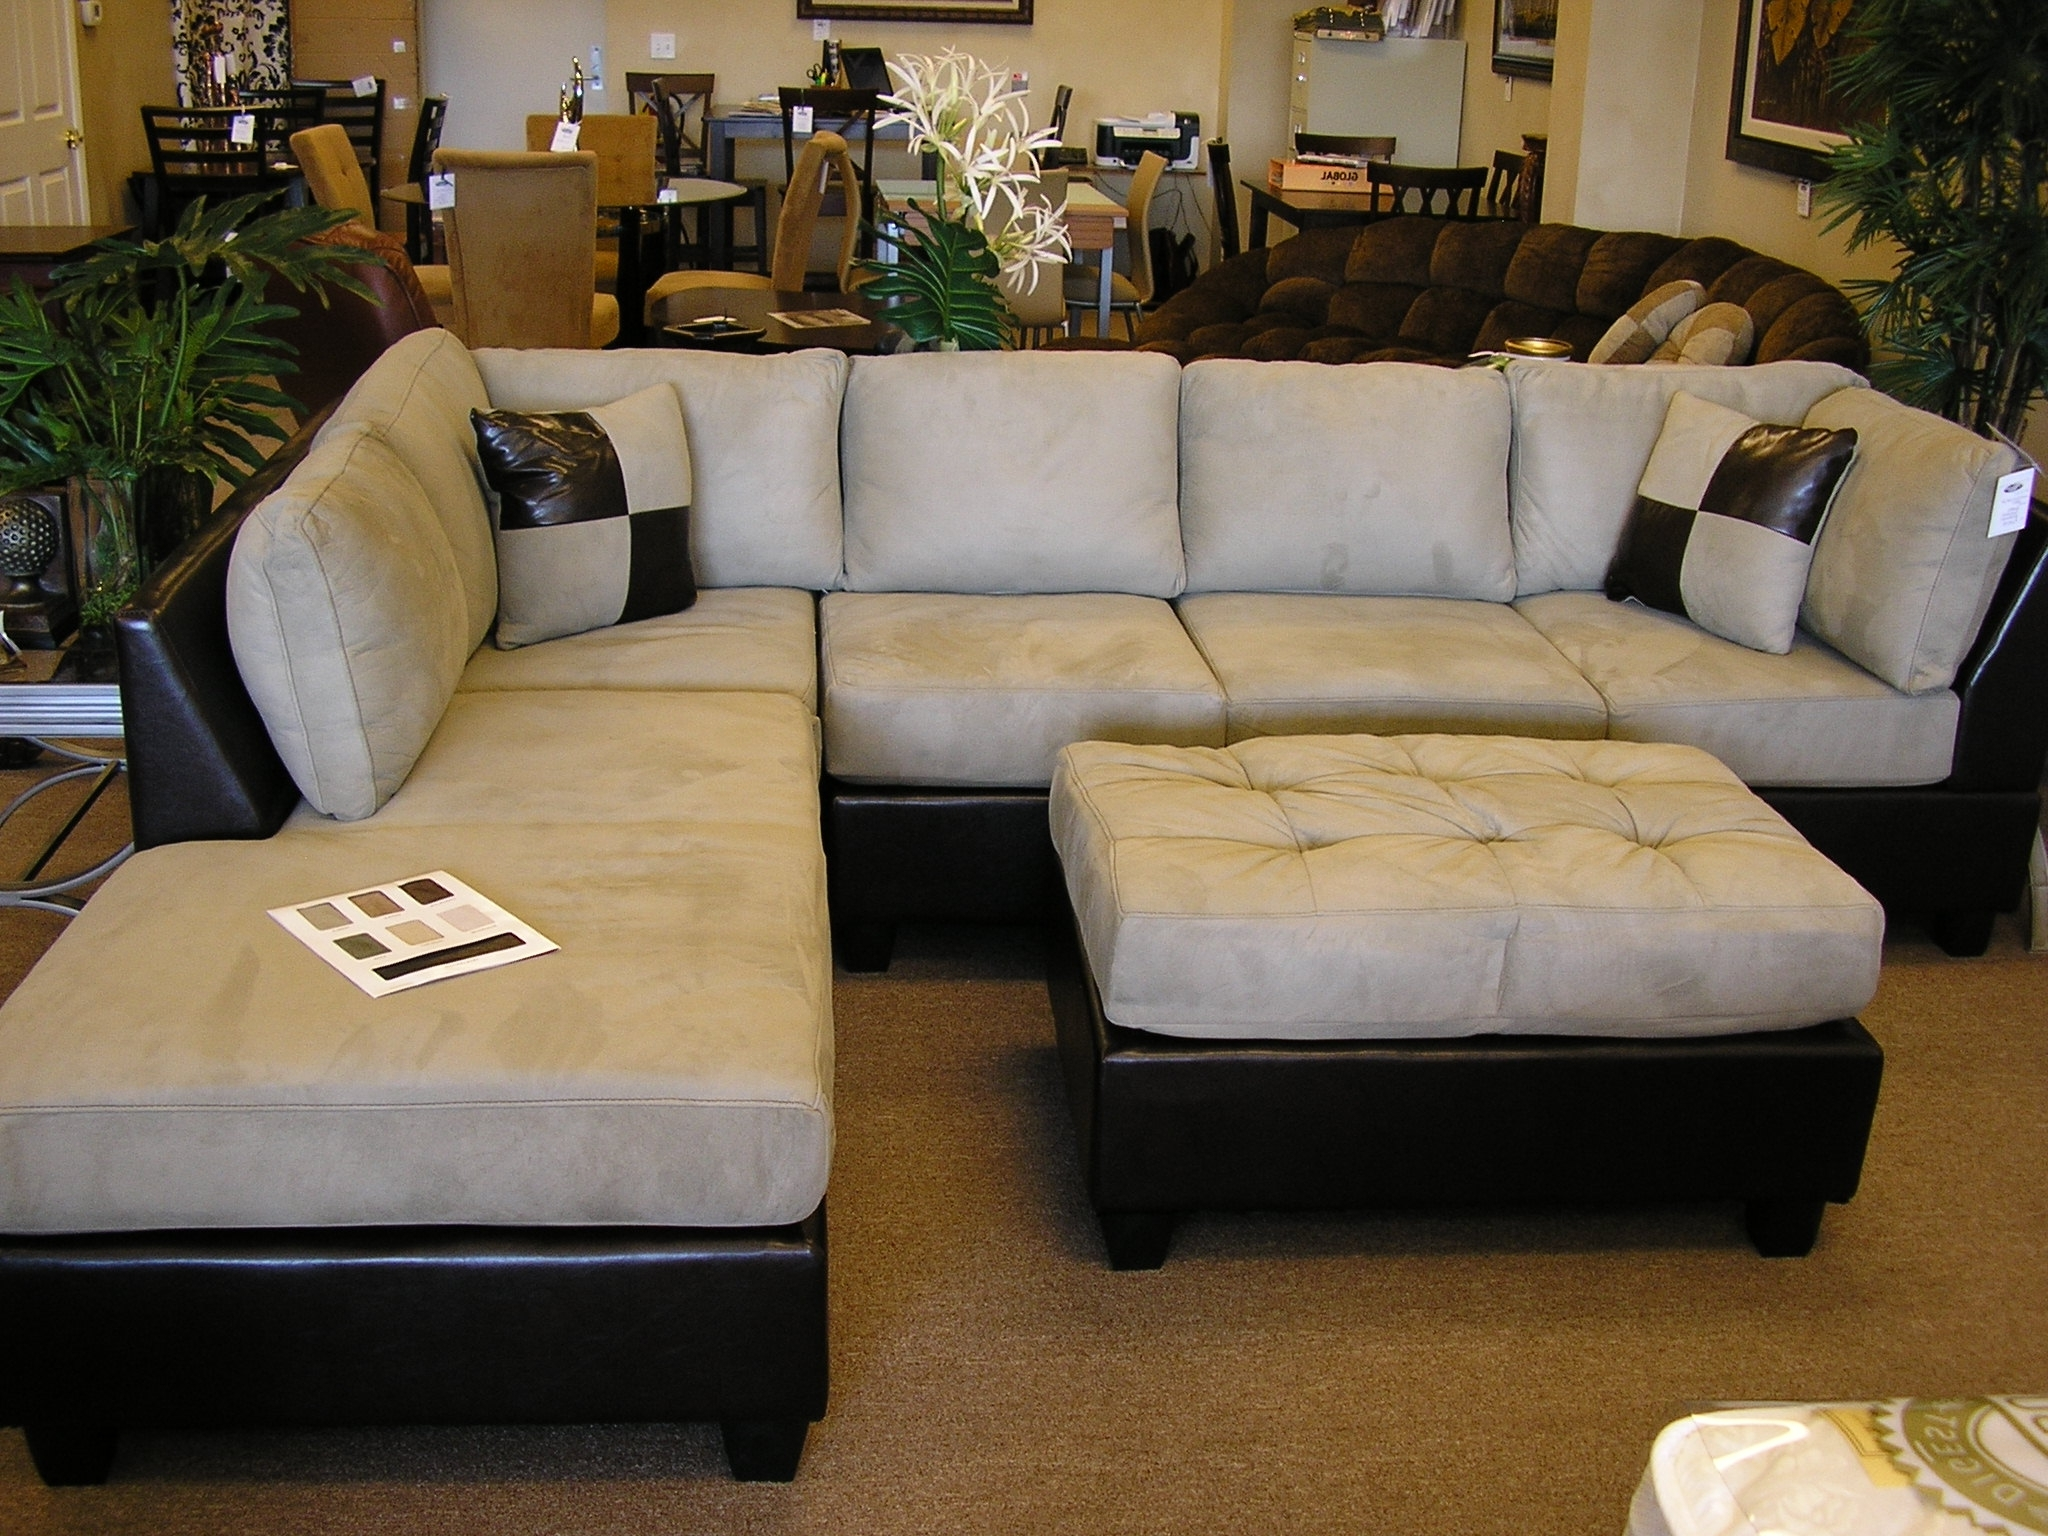 Furniture : Sectional Chaise Lounge Sofa Double Along With Pertaining To Newest Long Chaise Sofas (View 10 of 20)